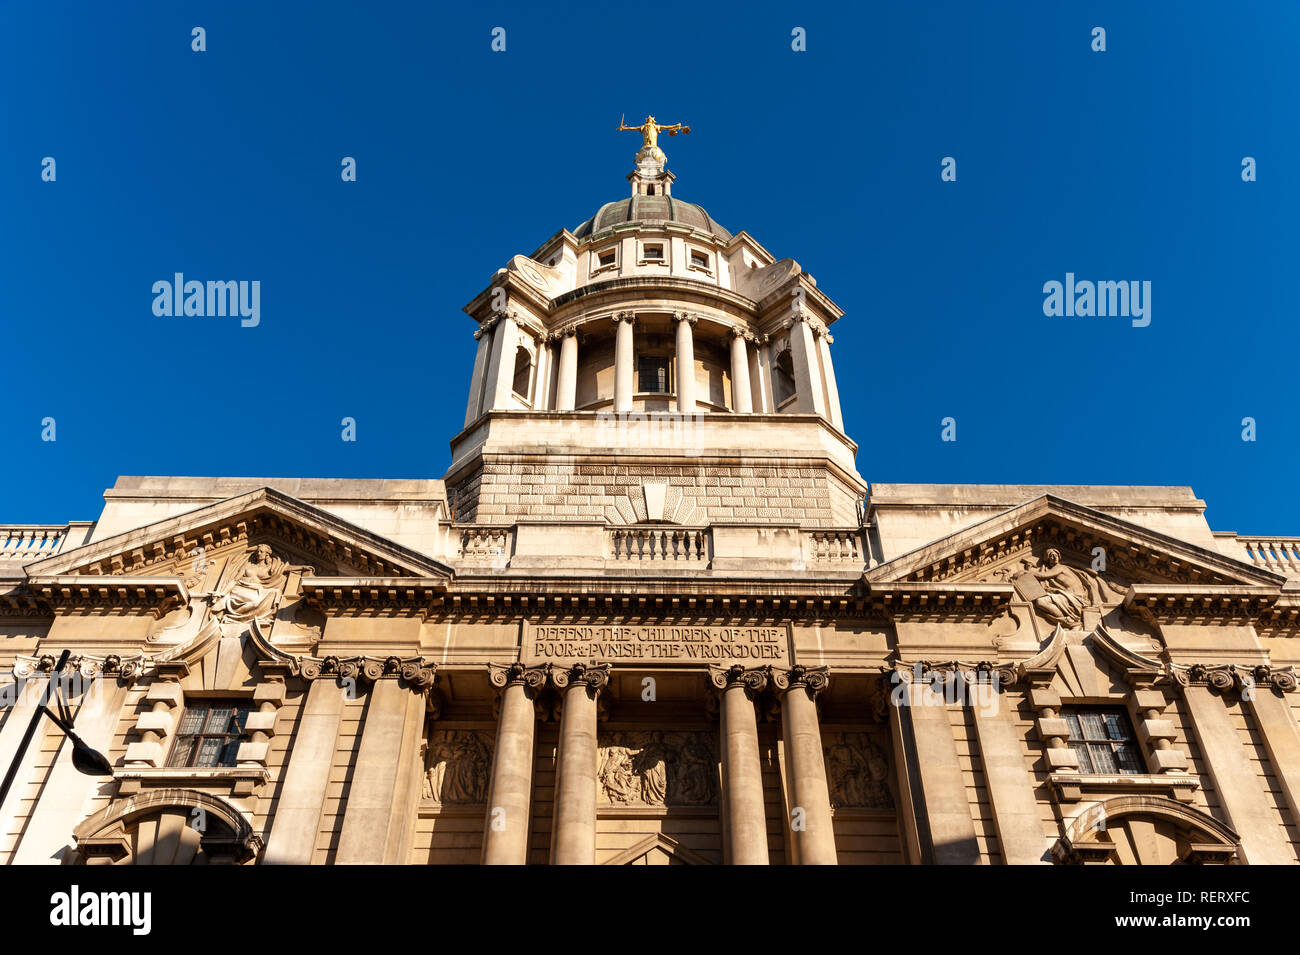 The Old Bailey, London, UK - Stock Image